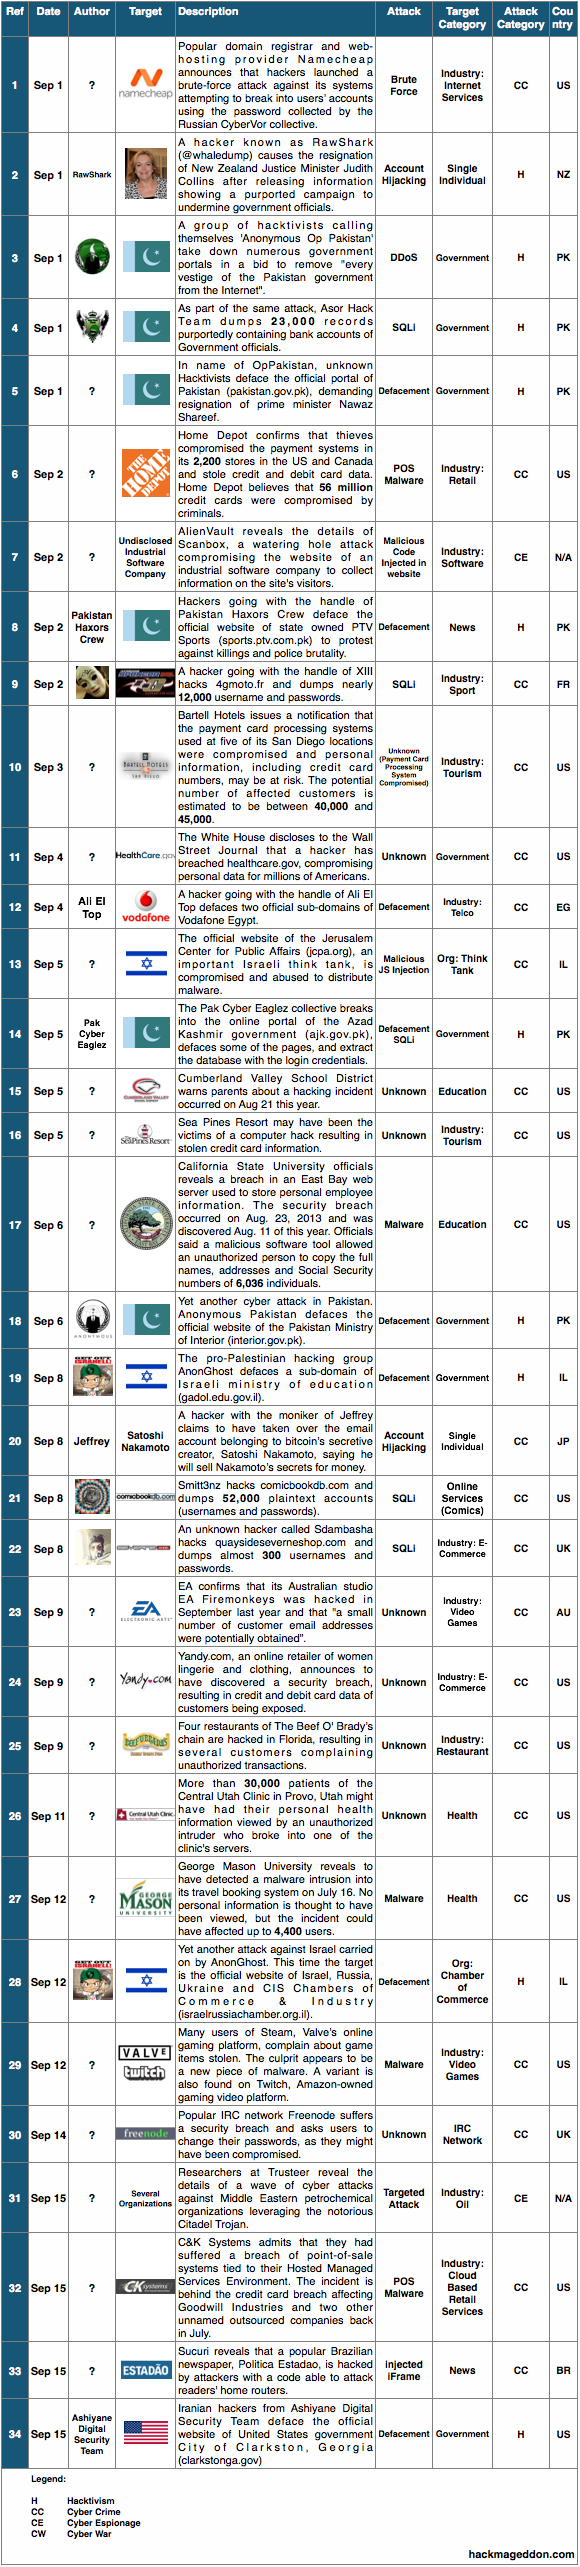 1-15 September 2014 Cyber Attacks Timeline